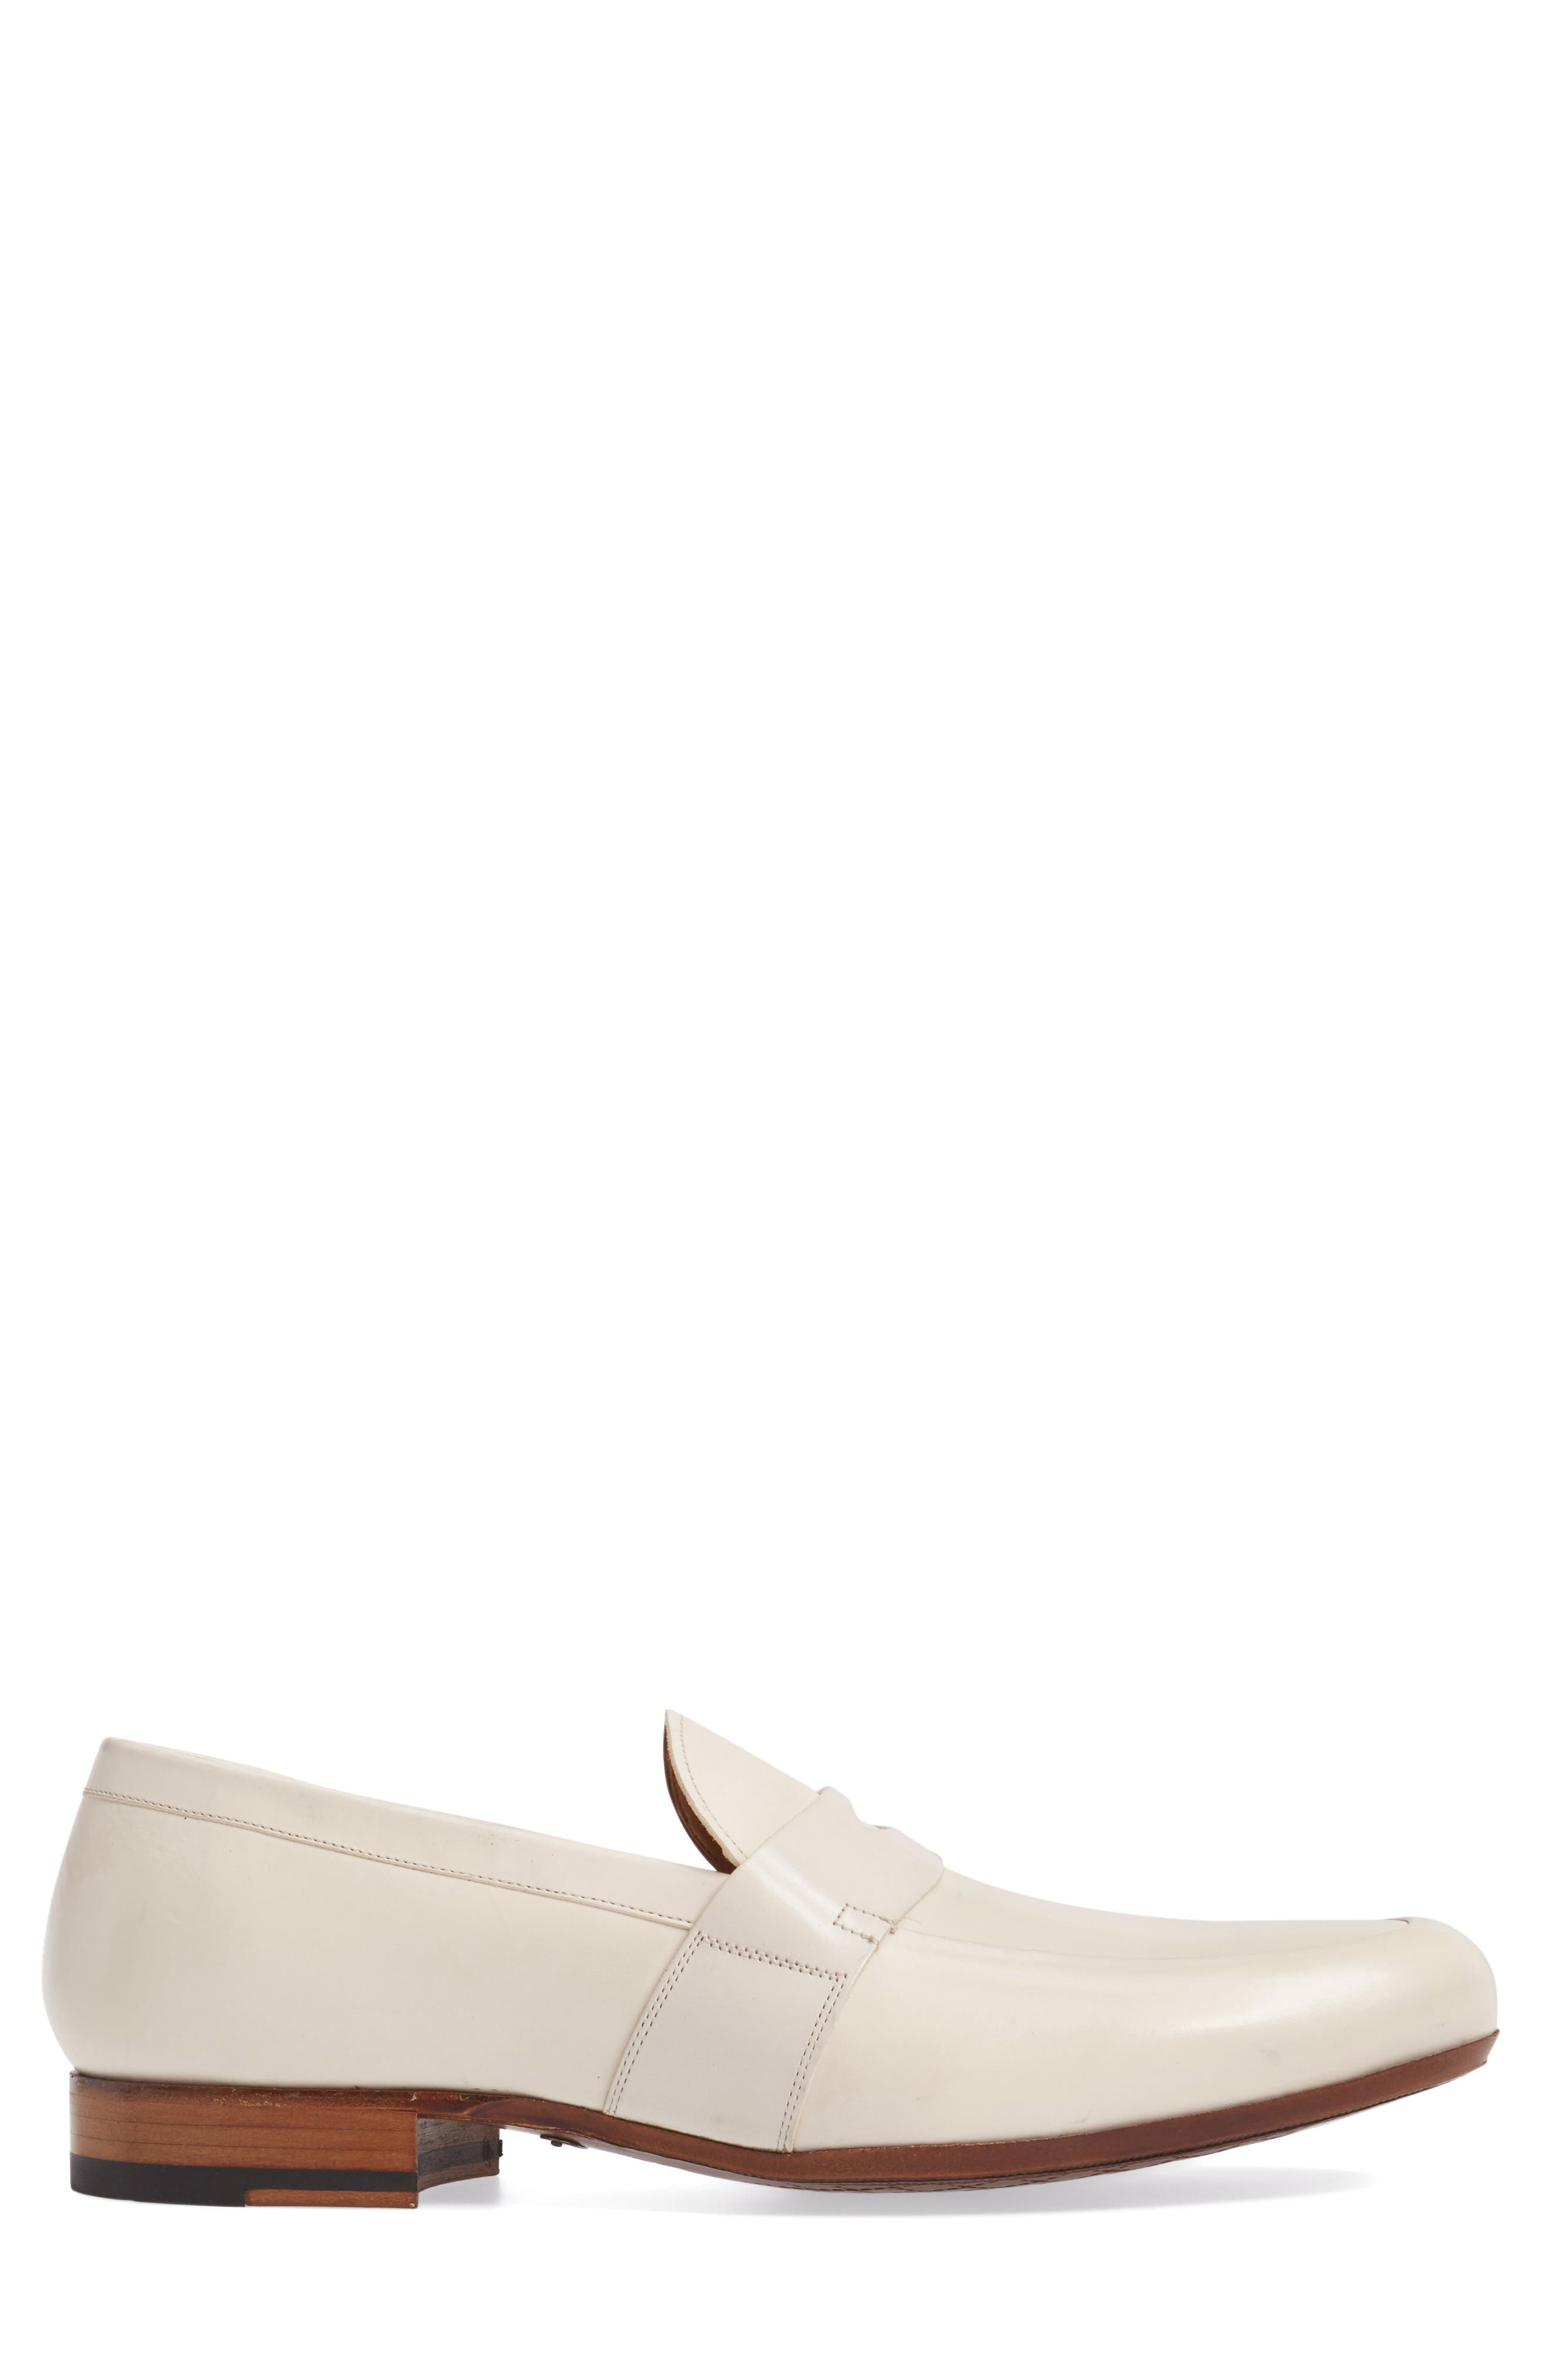 Leopold Penny Loafer,                             Alternate thumbnail 3, color,                             Bone Leather